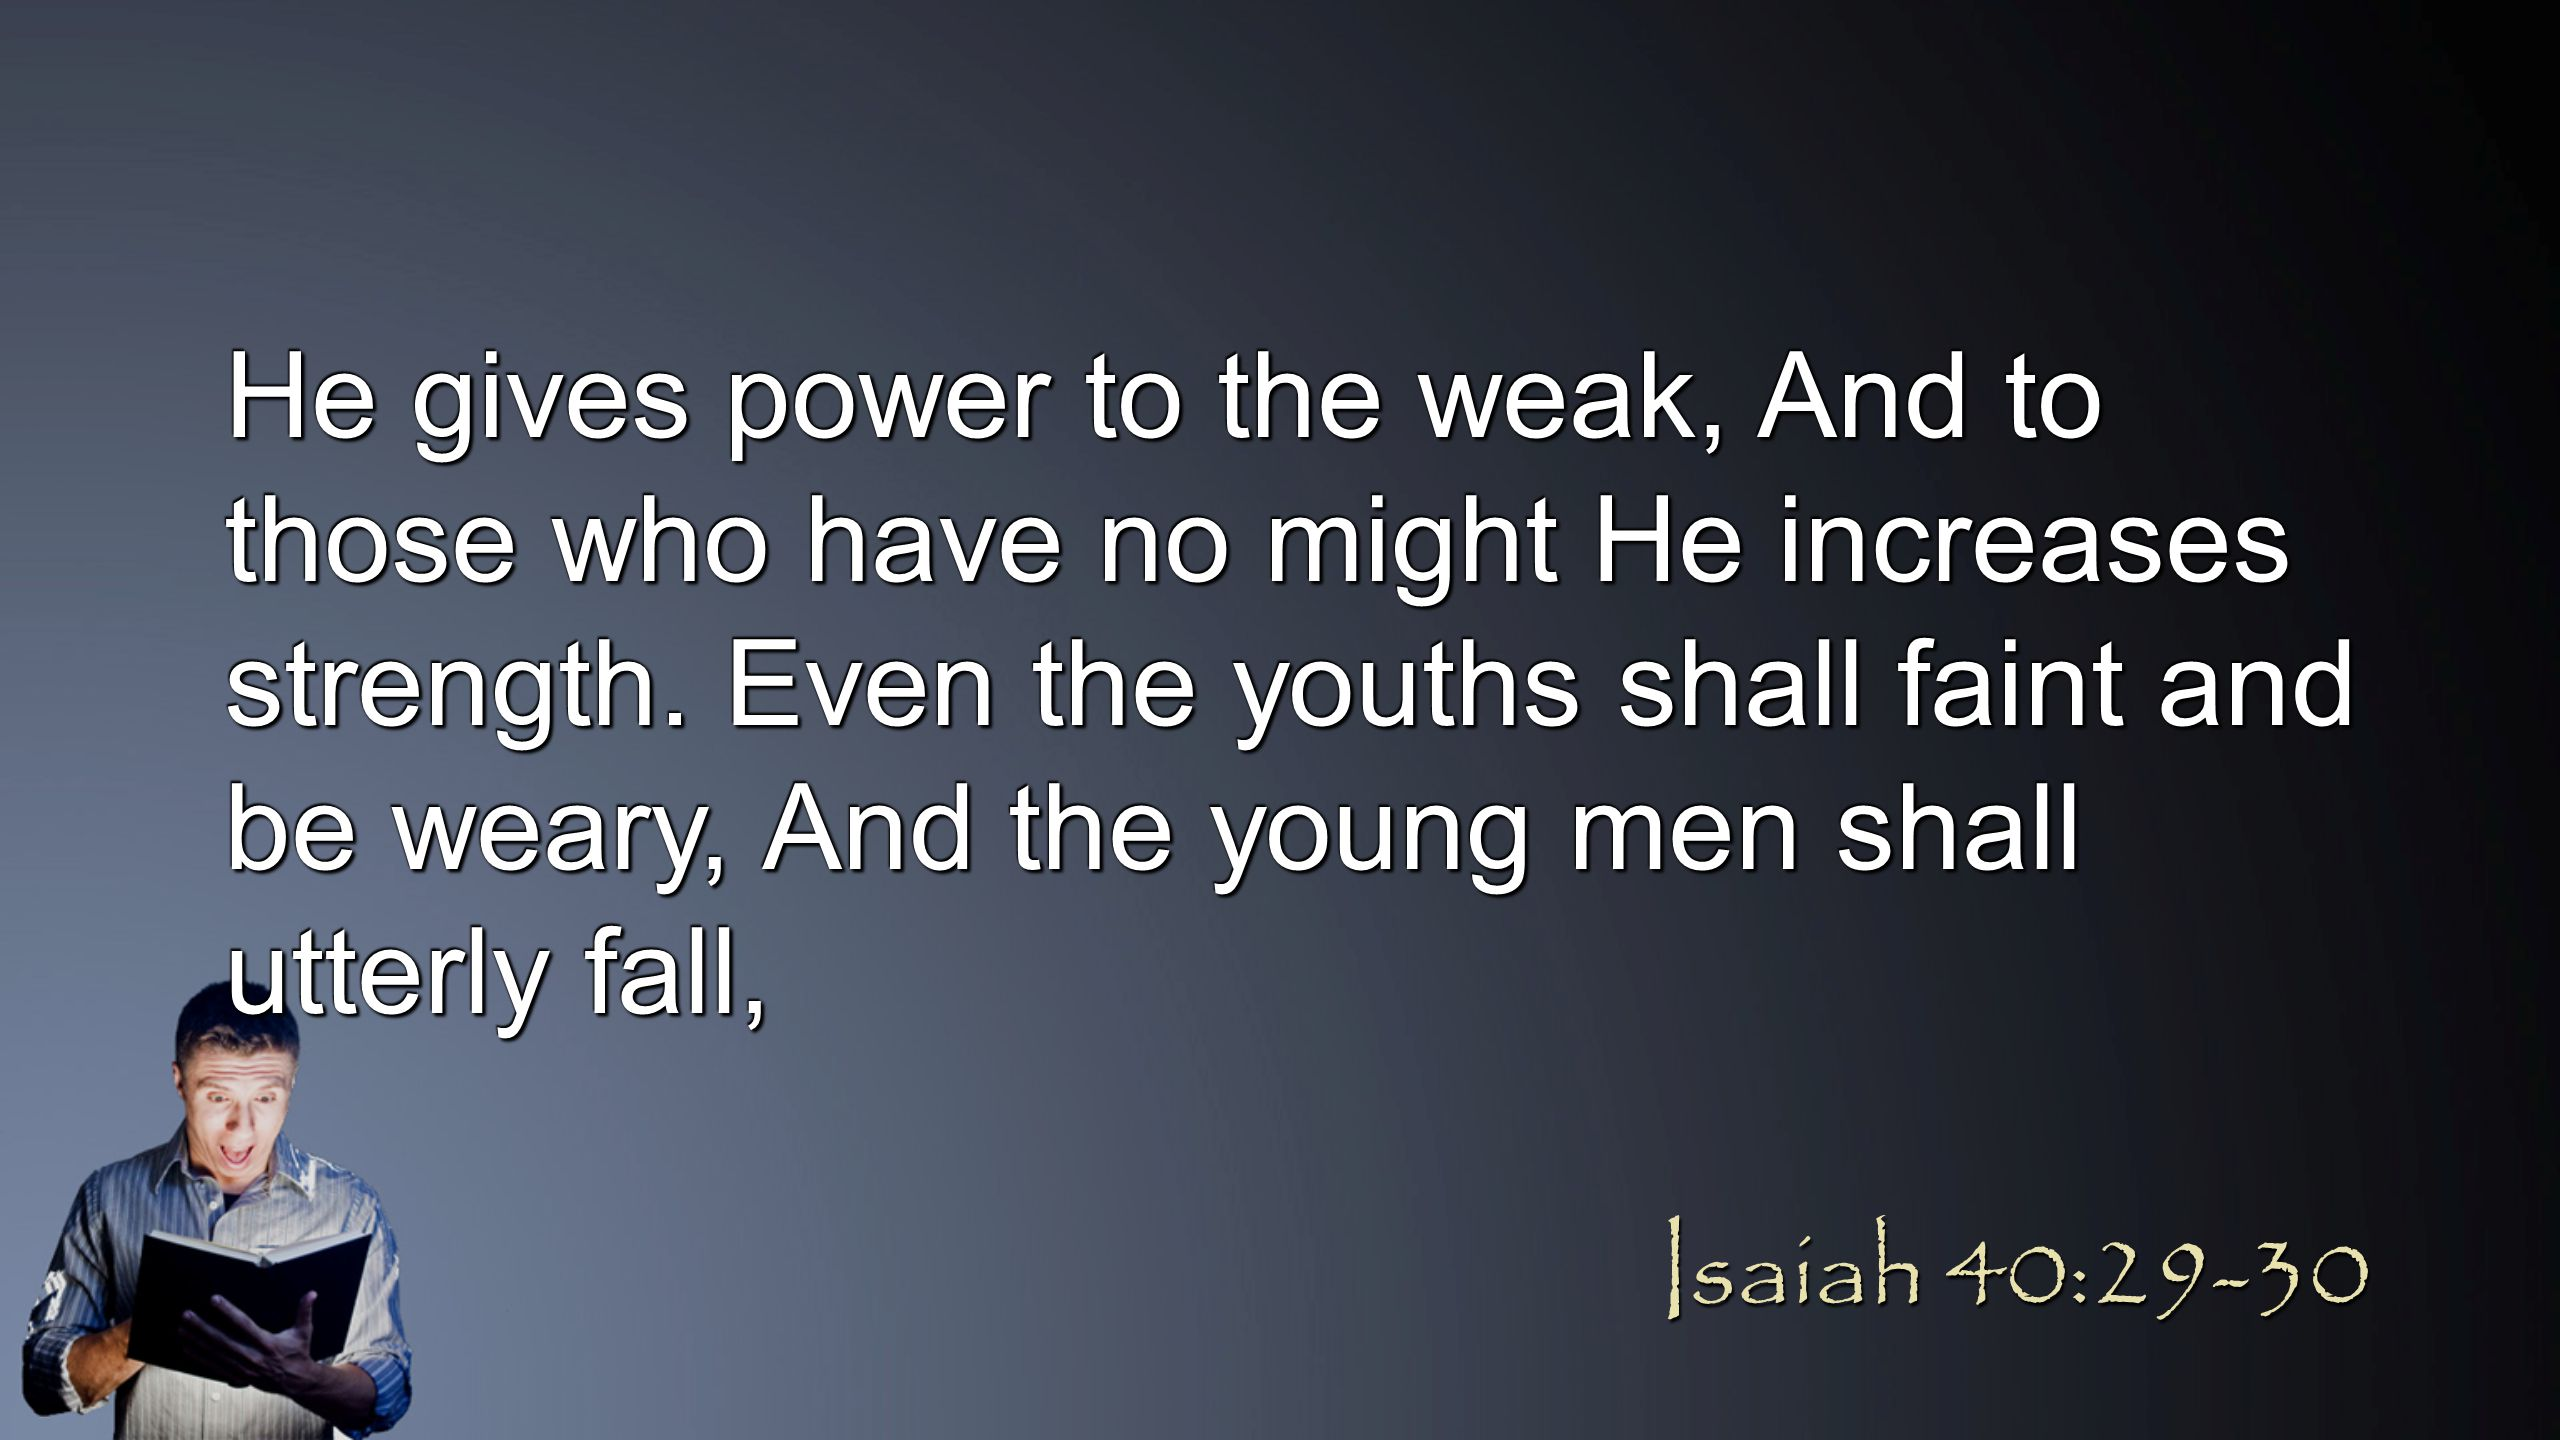 He gives power to the weak, And to those who have no might He increases strength. Even the youths shall faint and be weary, And the young men shall ut